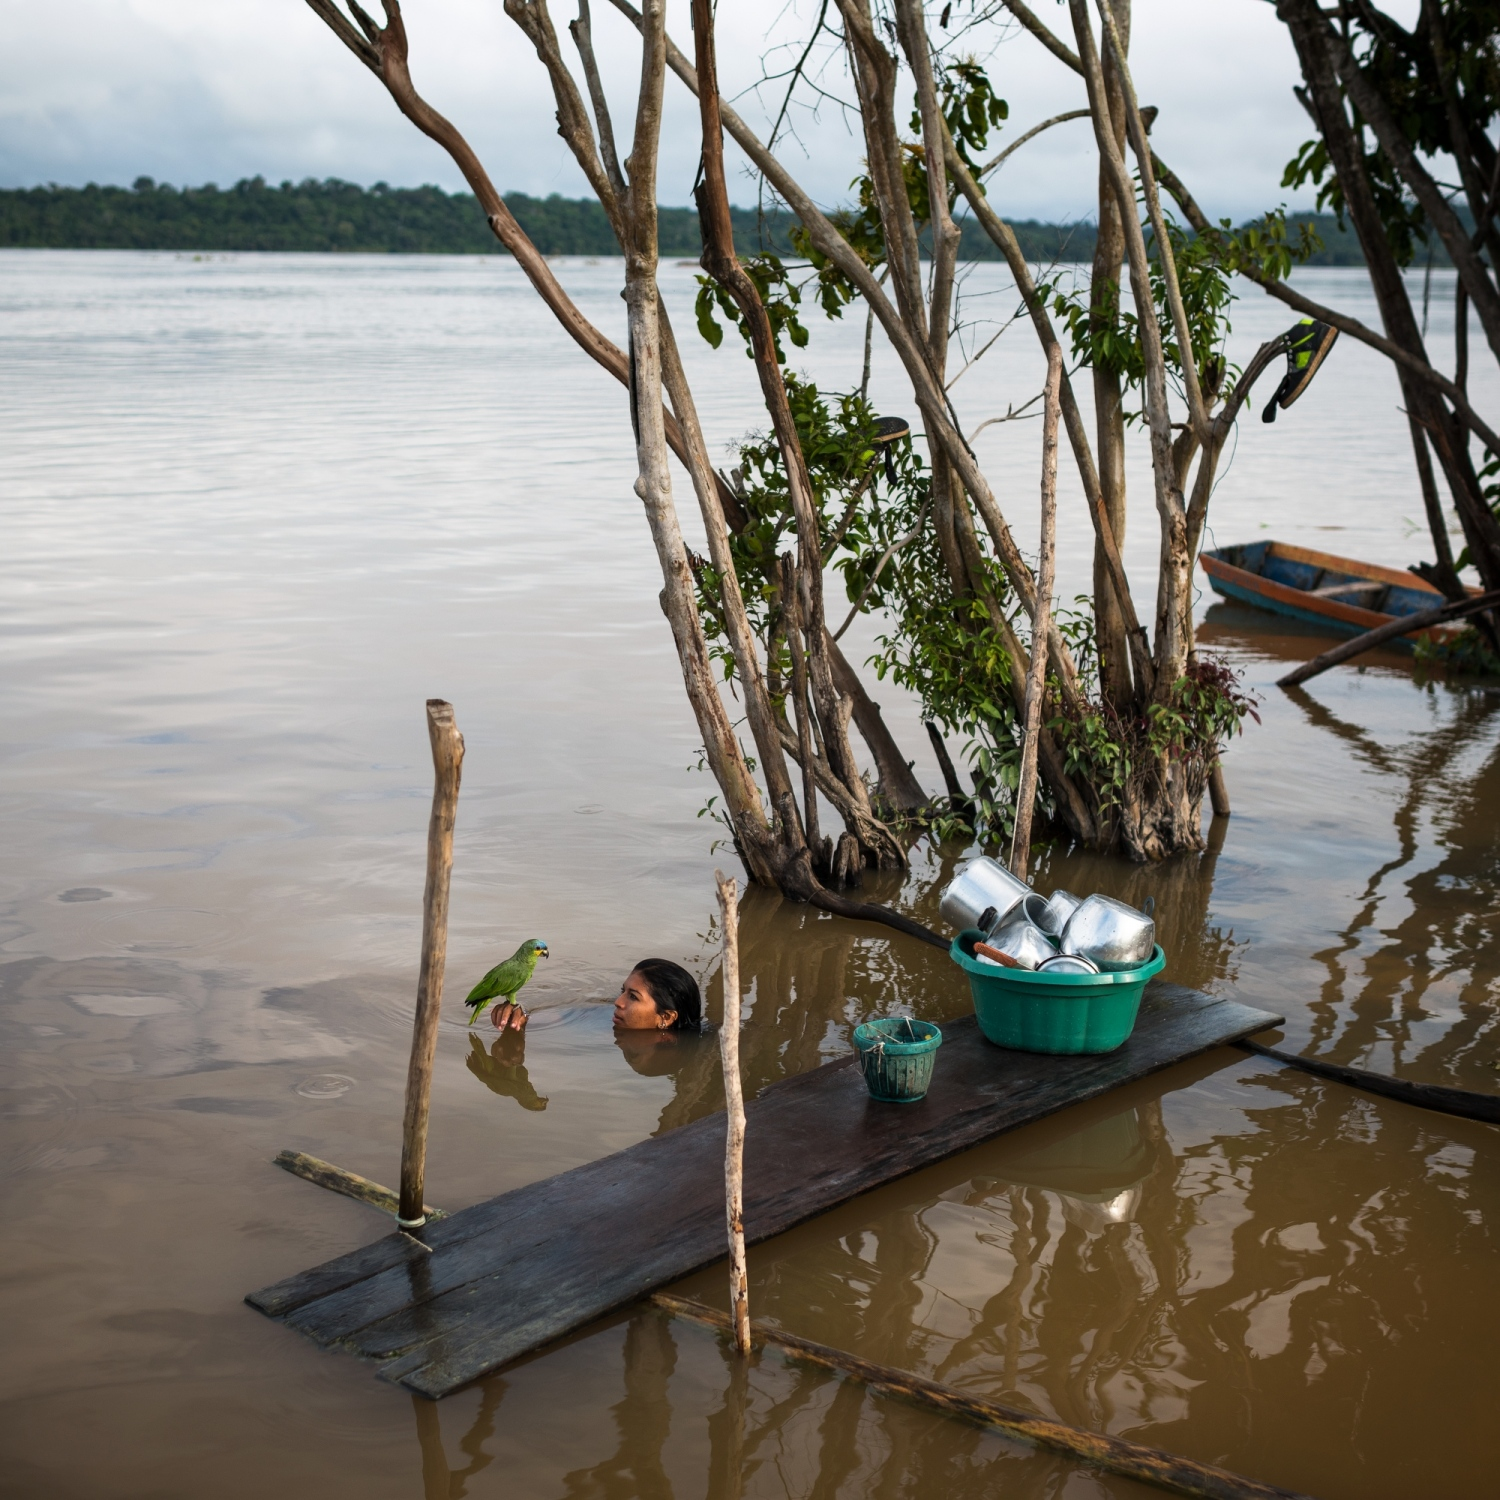 Lucicleide Kurap of the Munduruku village of Dacé Watpu has a moment with a pet parakeet after washing dishes in the Tapajos River in Para State, Brazil.   /Aaron Vincent Elkaim